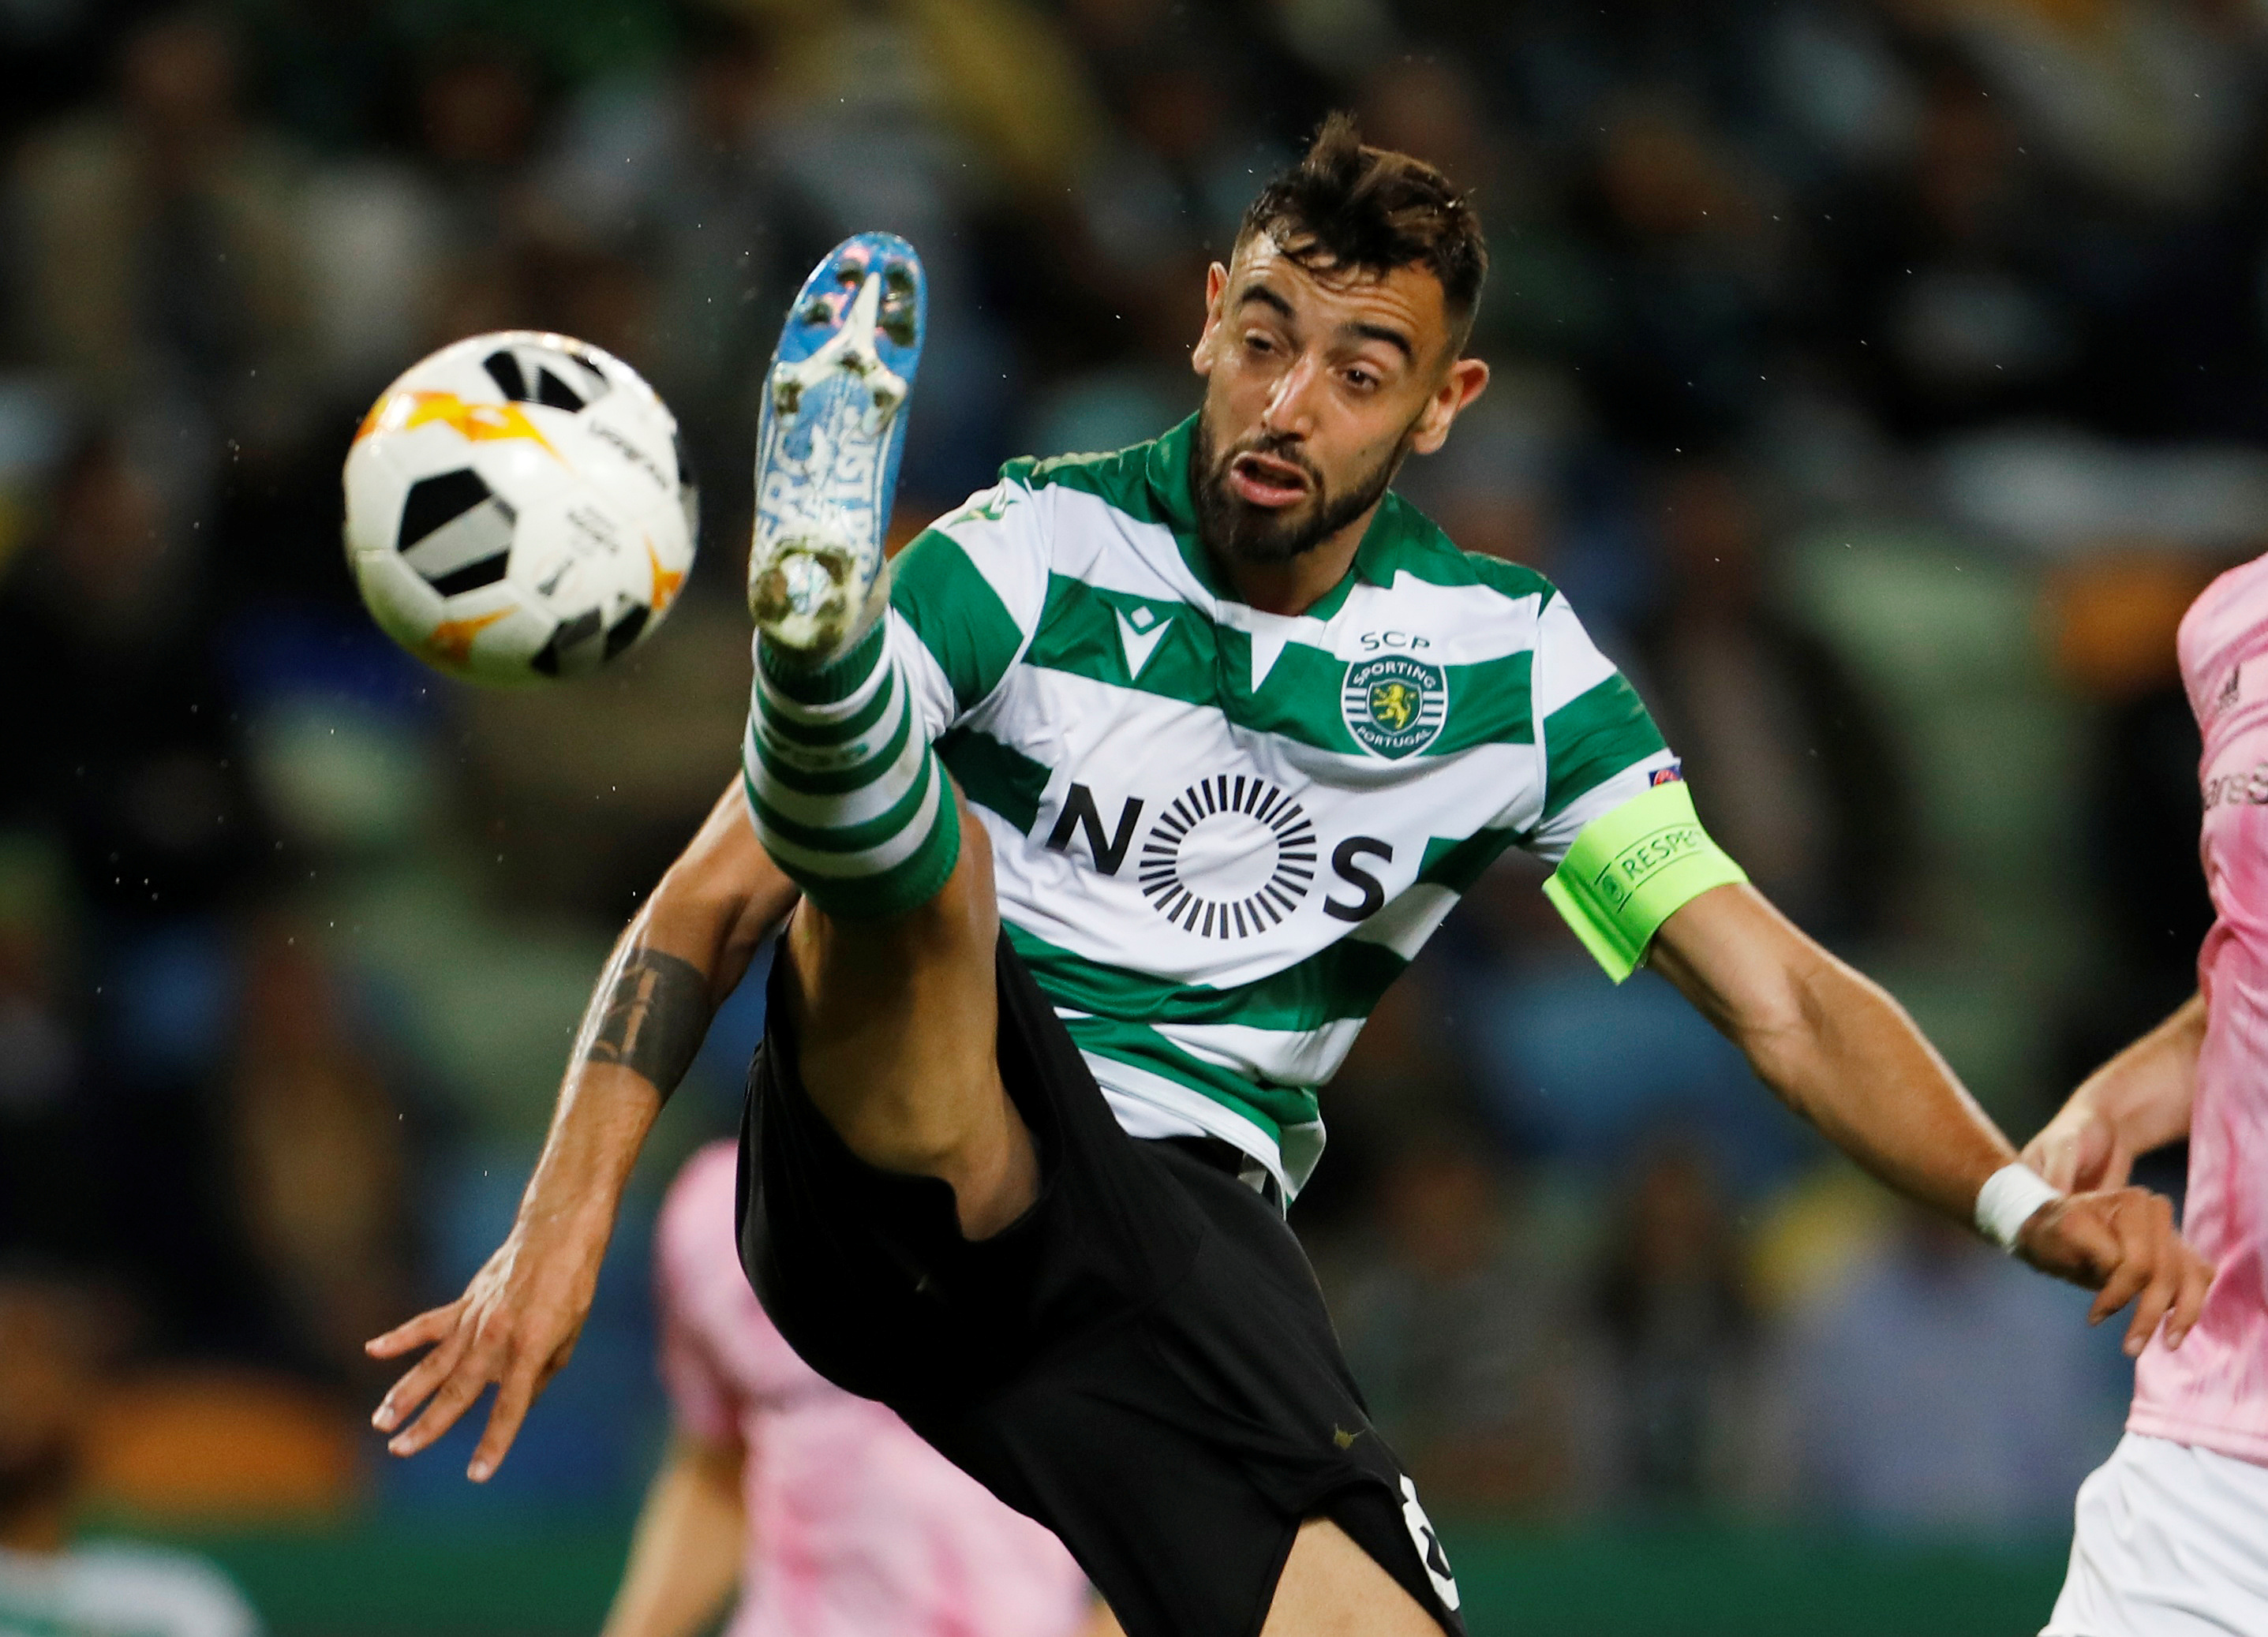 Manchester United midfield target Bruno Fernandes relaxed over Old Trafford rumors